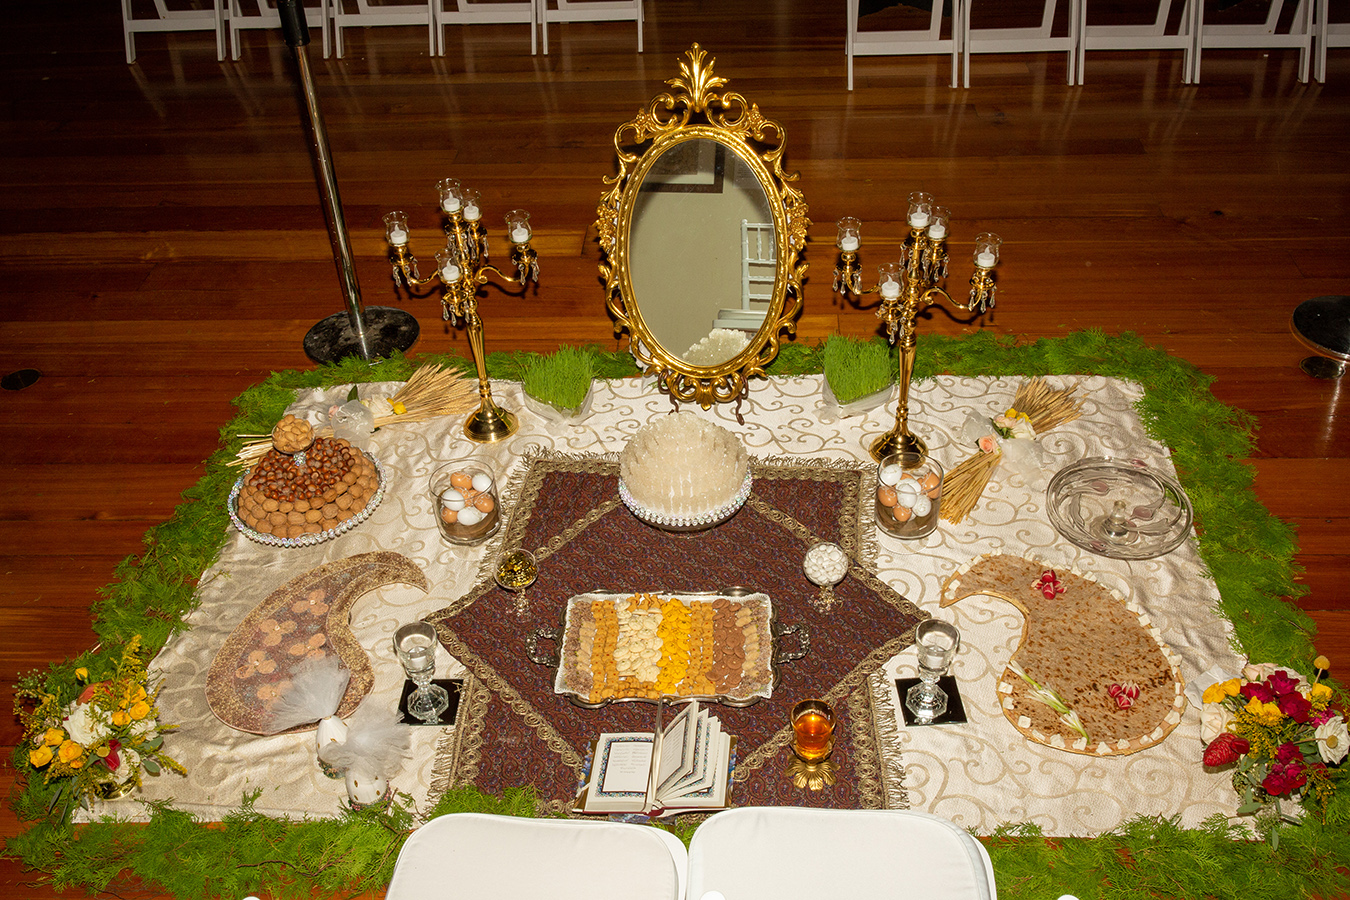 """The """"Sofreh Aghd"""" included Rue Seeds, Traditional Pastries, Mirror and two candelabras, Bread, feta cheese, and greens, Decorated eggs, almonds, walnuts and hazelnuts, Fruits: pomegranates, grapes, apples; Gold Coins; Hafez's Divan, and an Antique Paisley Rug."""